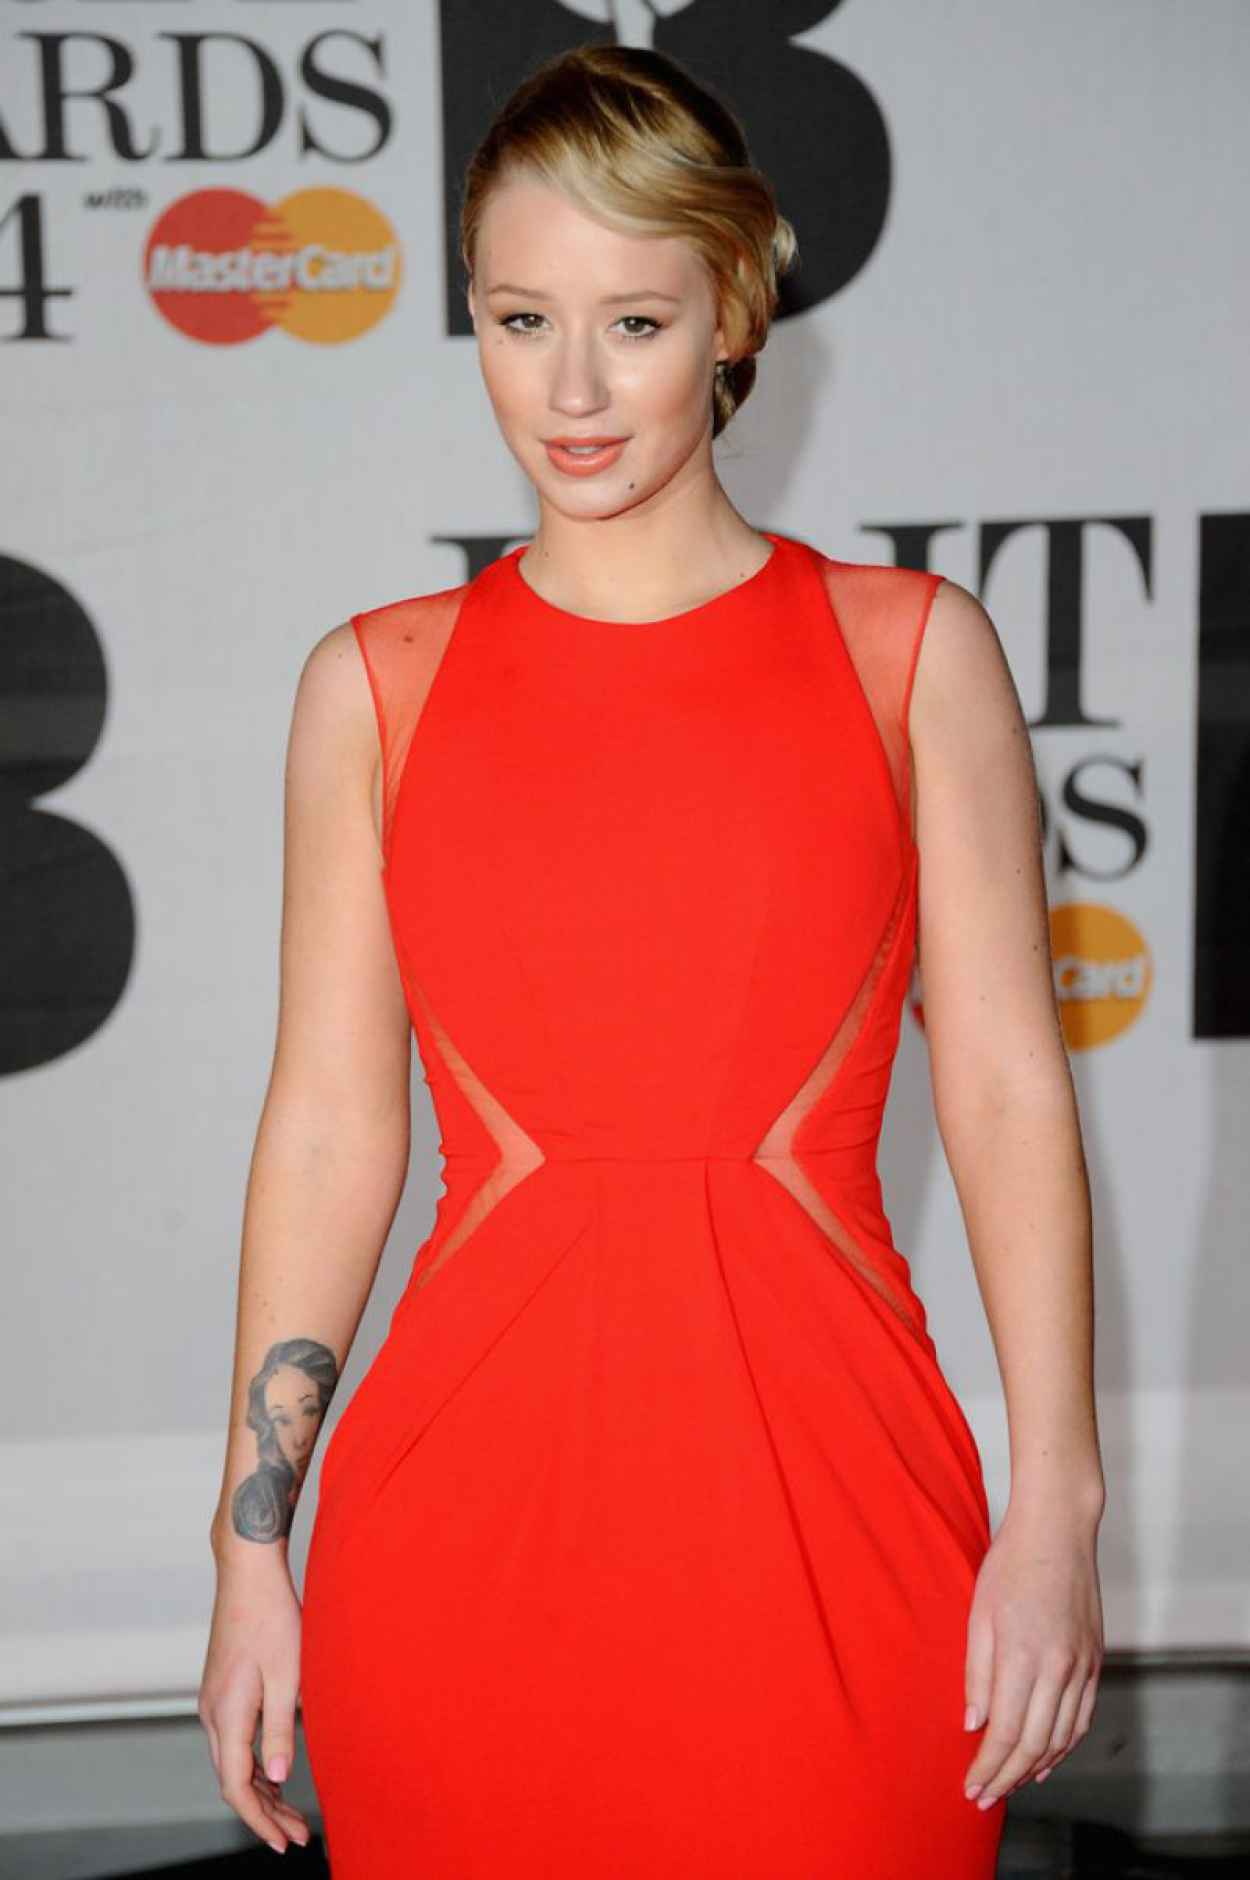 Iggy Azalea Wearing Elie Saab Dress - 2015 BRIT Awards in London-1